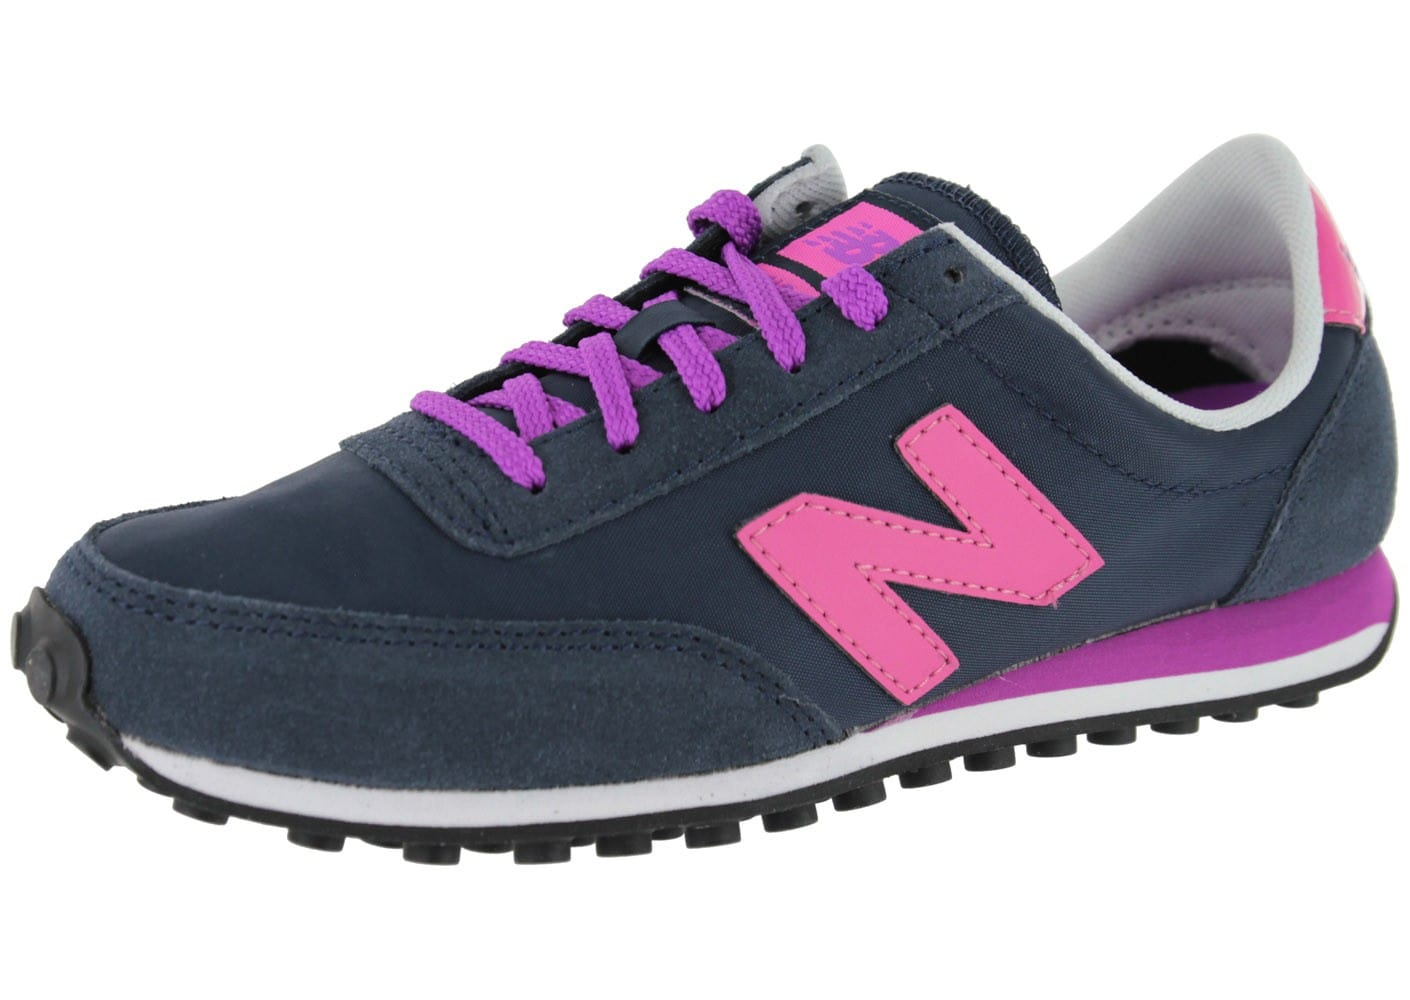 new balance ul410 npb marine chaussures chaussures chausport. Black Bedroom Furniture Sets. Home Design Ideas